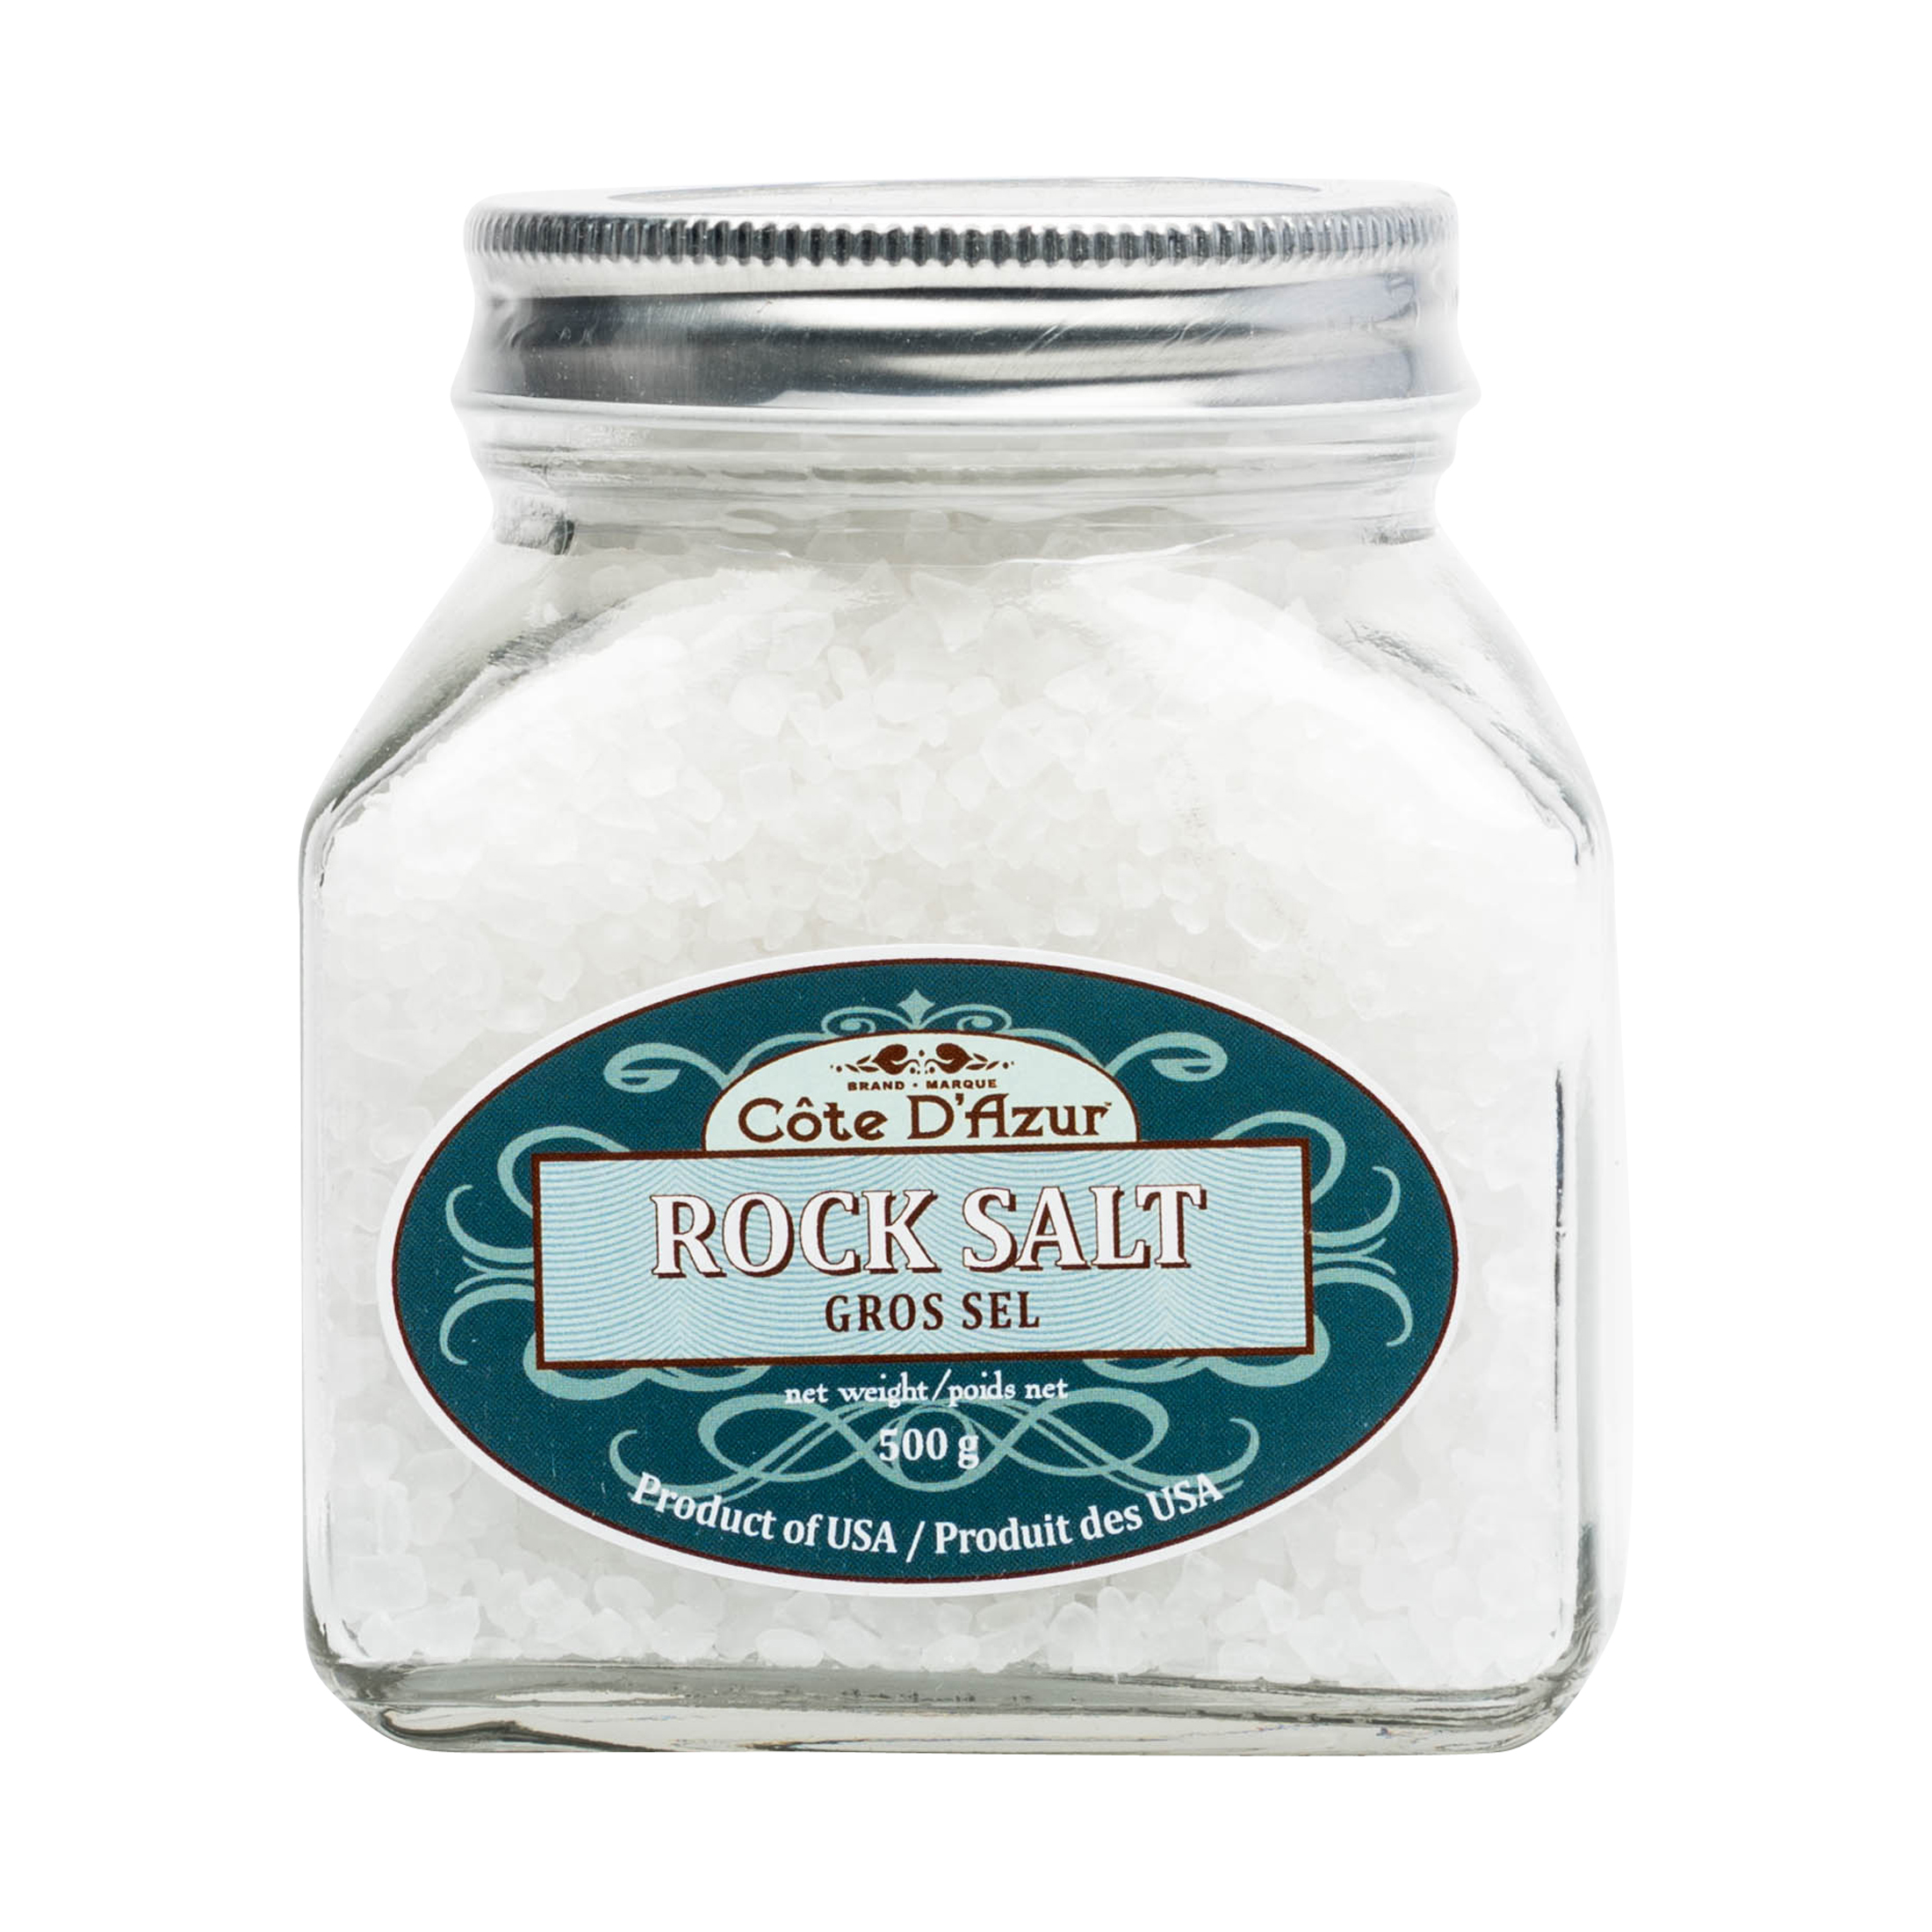 ROCK SALT IN GLASS JAR